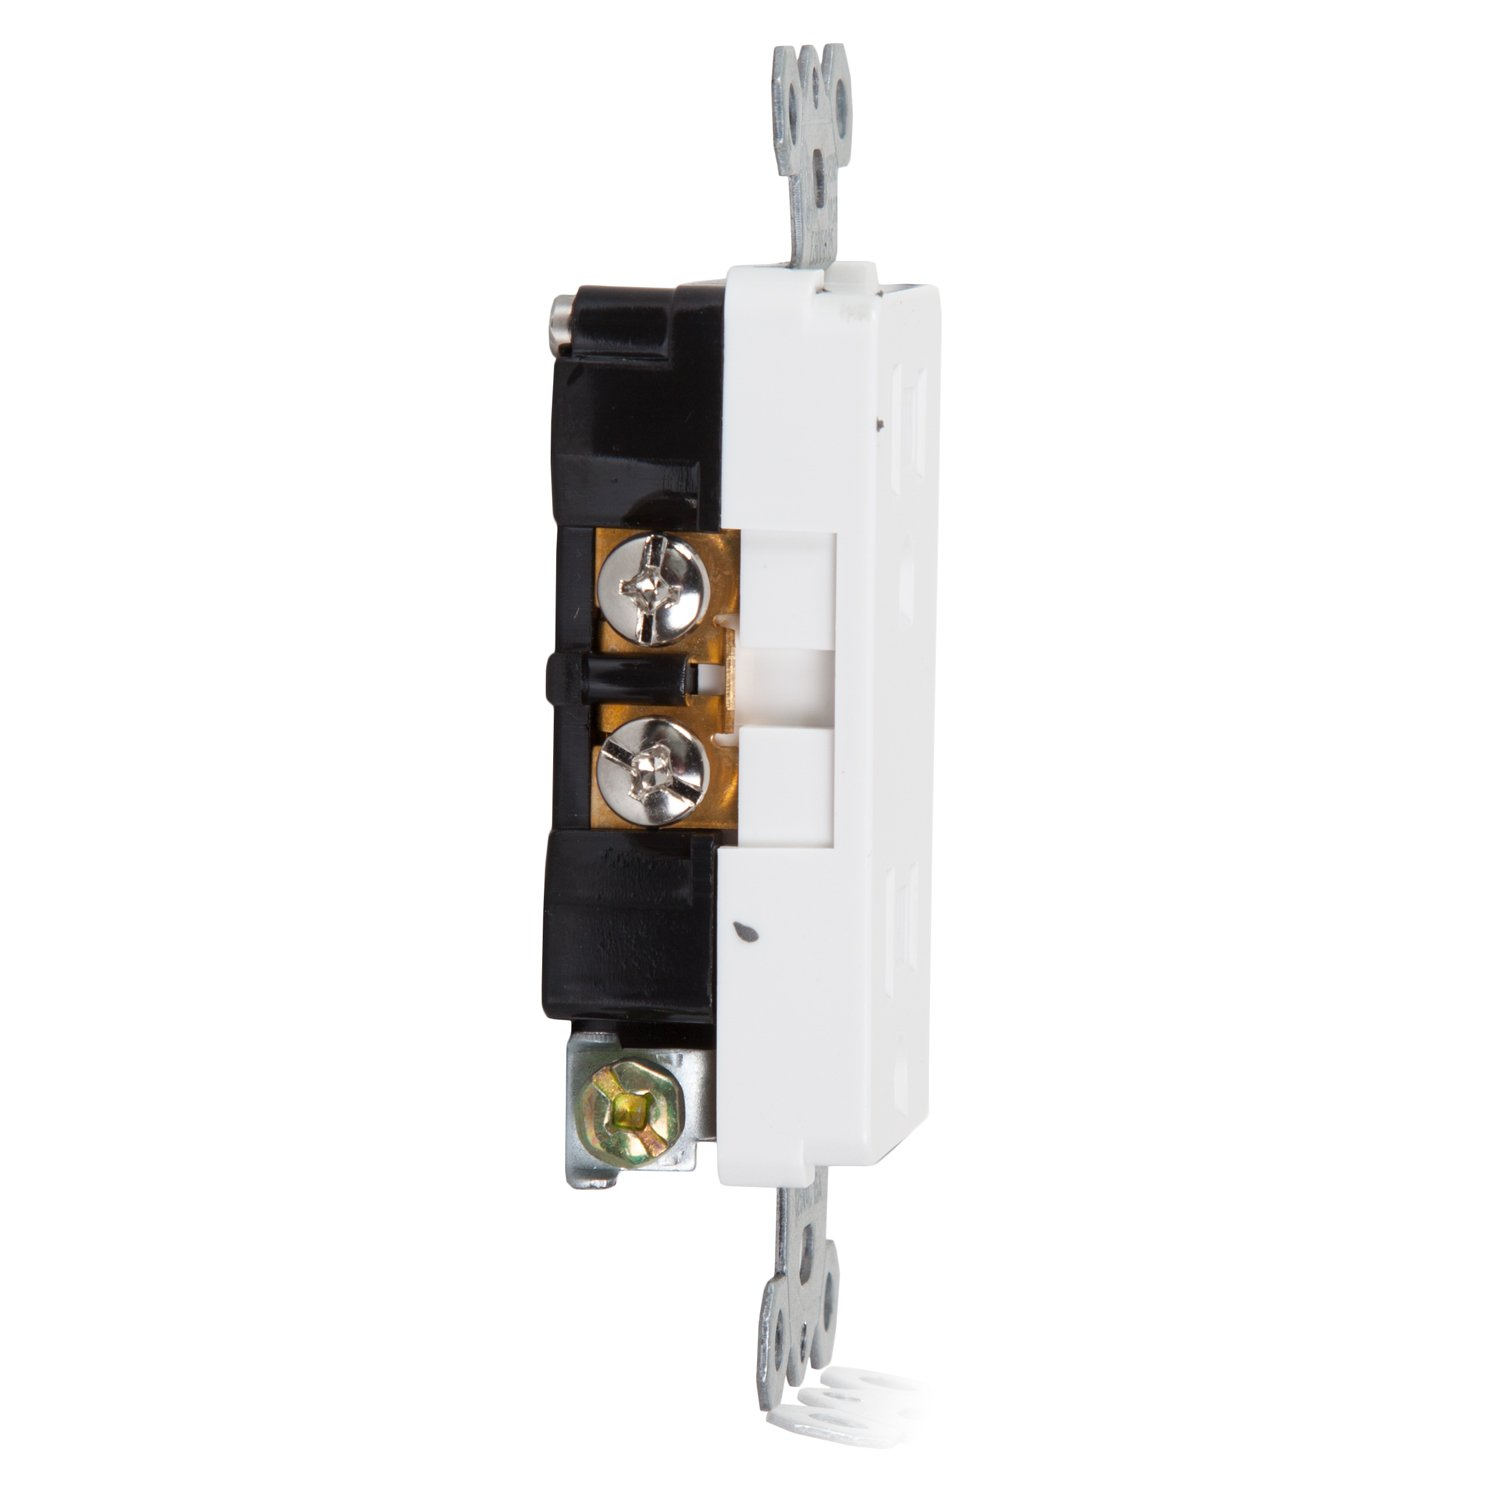 Maxxima Tamper Resistant Duplex Receptacle Standard Decorative Ground Fault Circuit Interrupter With Cover White20amp Outlets Electrical Wall Outlet 15a White Plates Included Pack Of 10